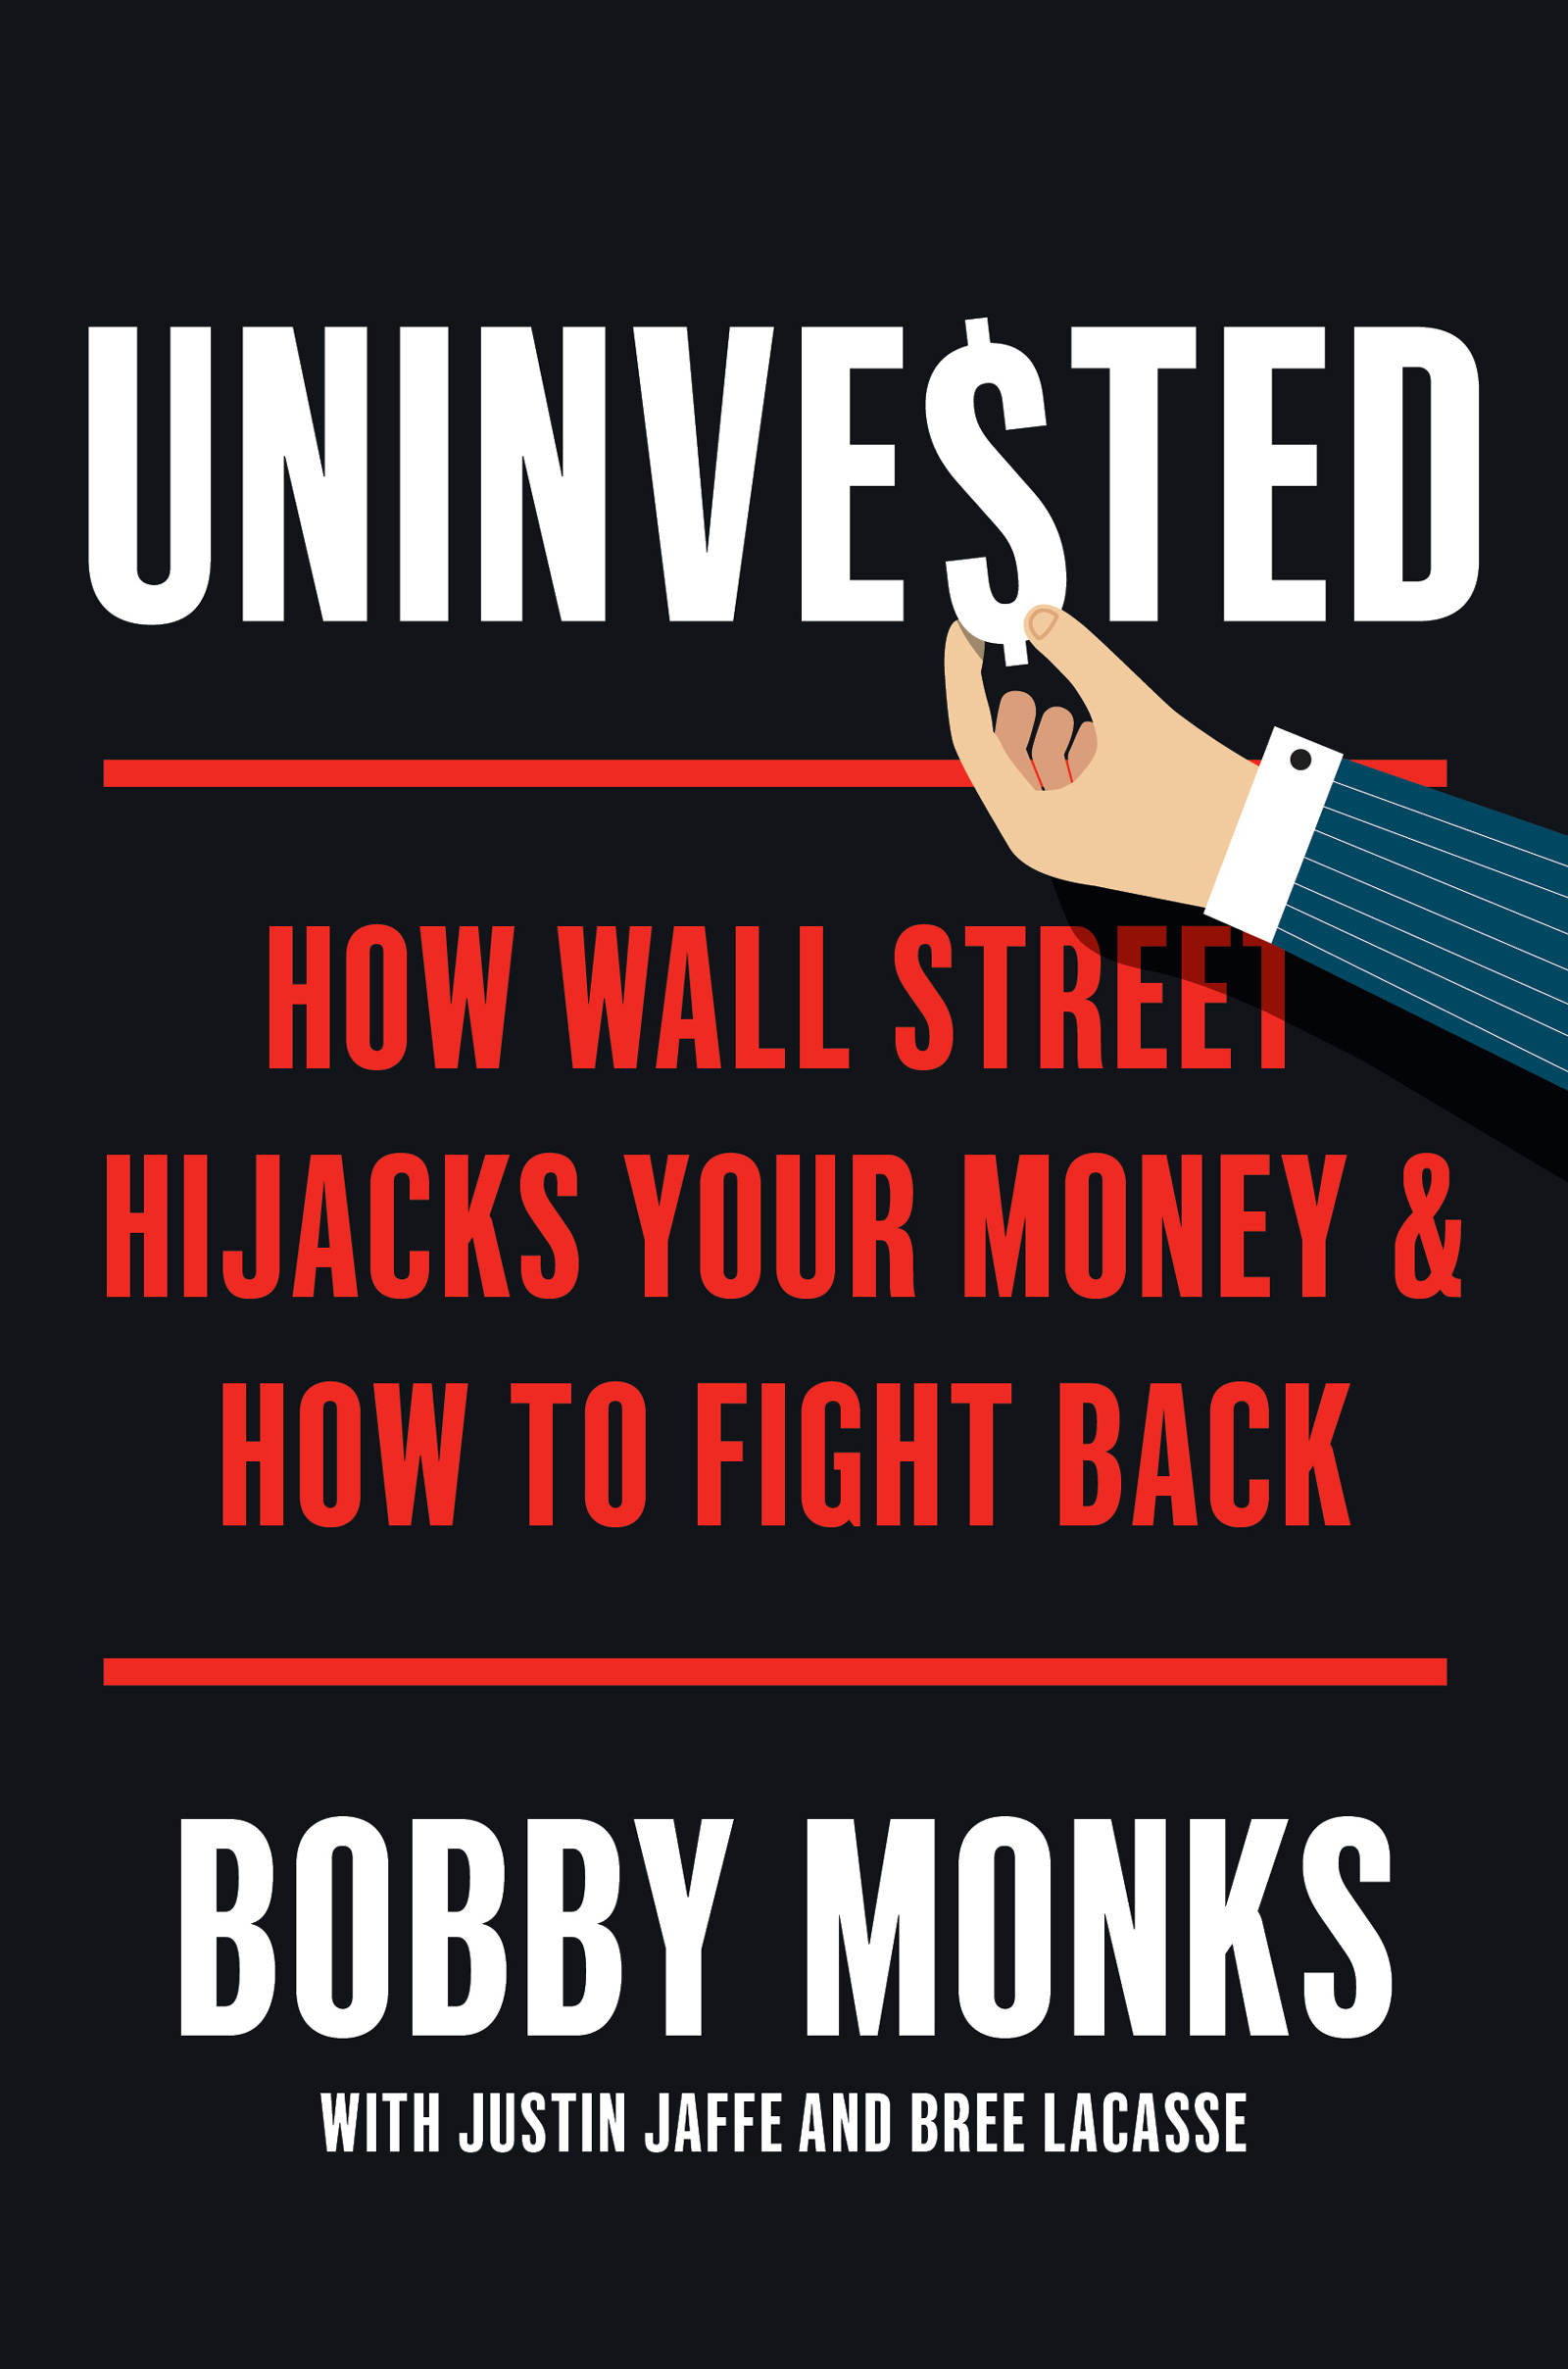 UNINVESTED - HOW WALL STREET HIGHJACKS YOUR MONEY & HOW TO FIGHT BACK